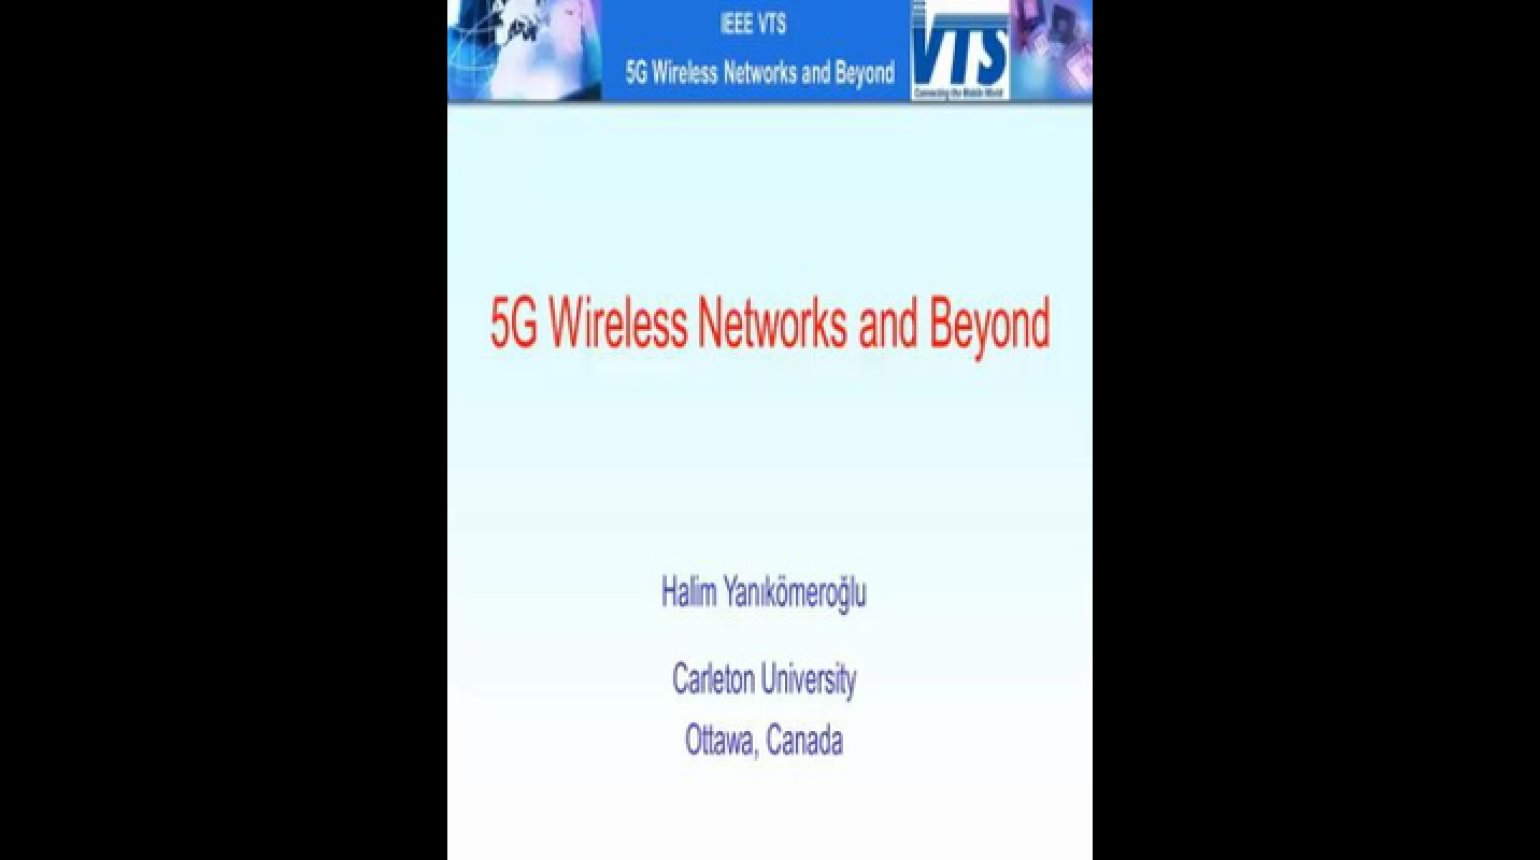 Video - 5G Wireless Networks and Beyond